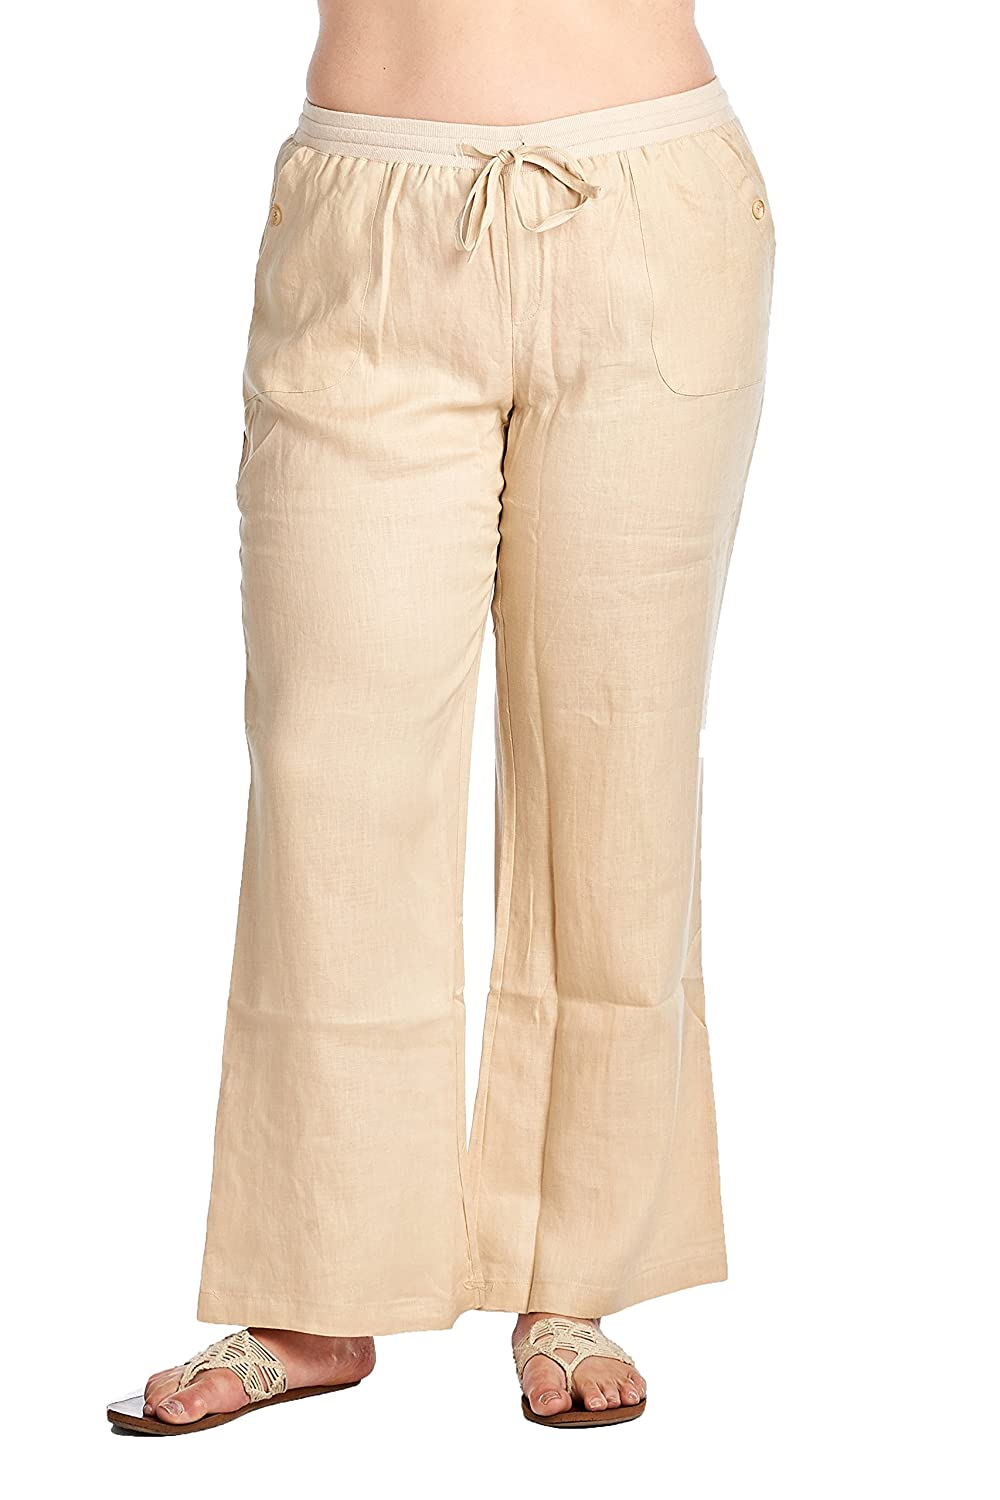 High Style Womens Plus Size Wide Leg 100 Linen Pants With